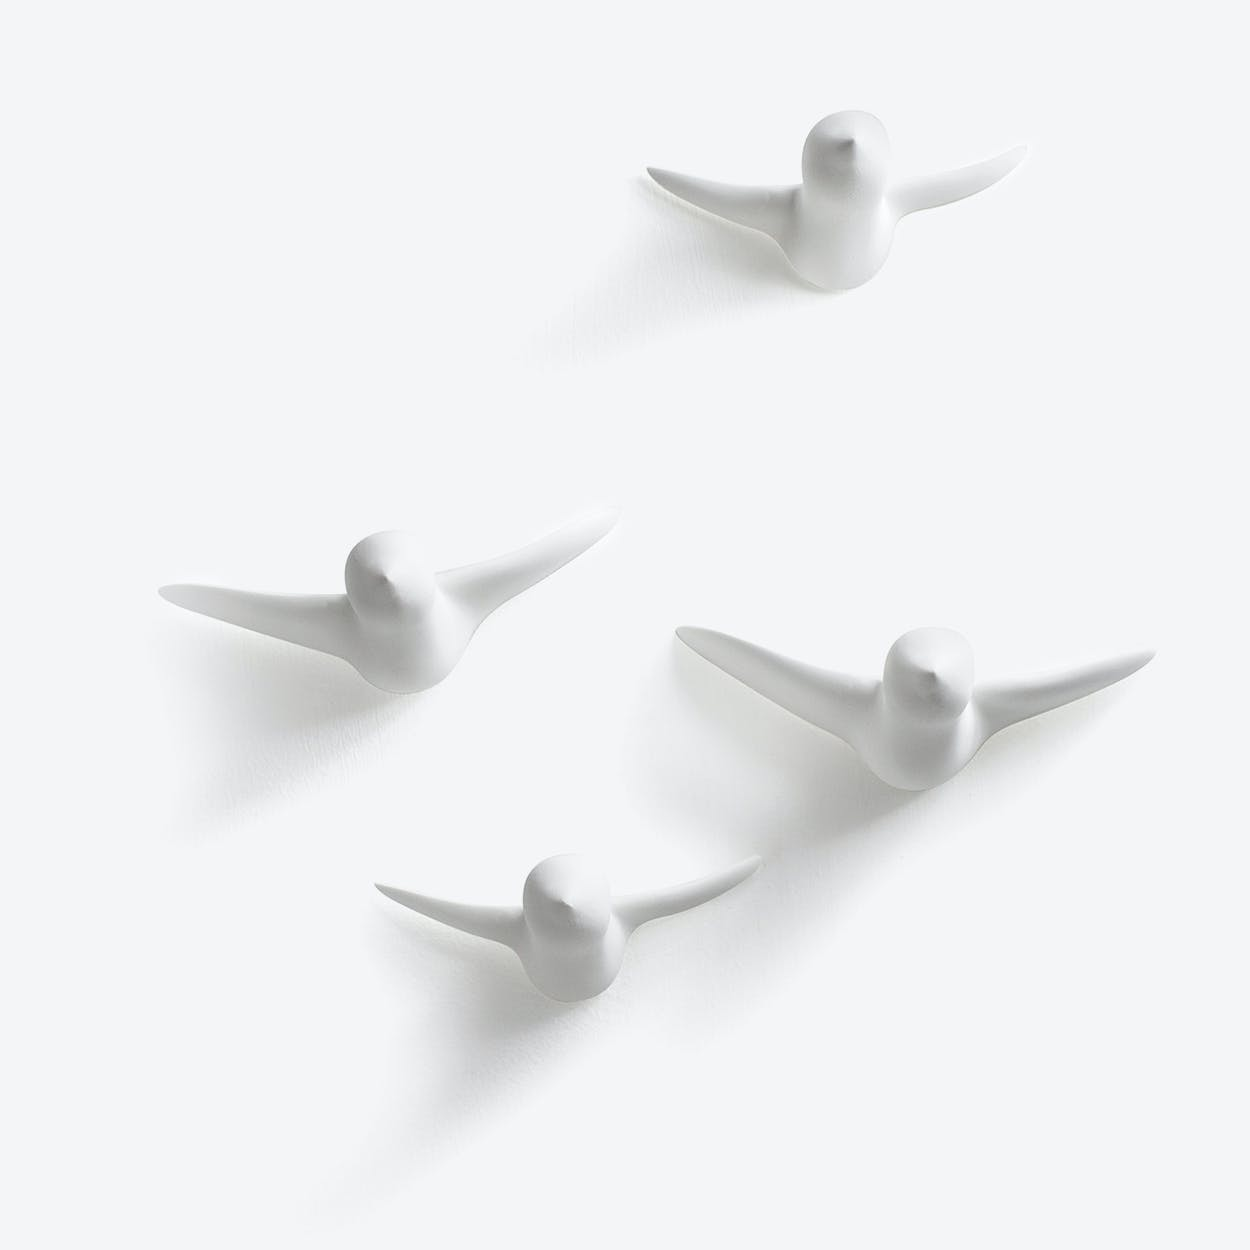 Ceramic Birds Wall Decoration in Small White - 4Pcs